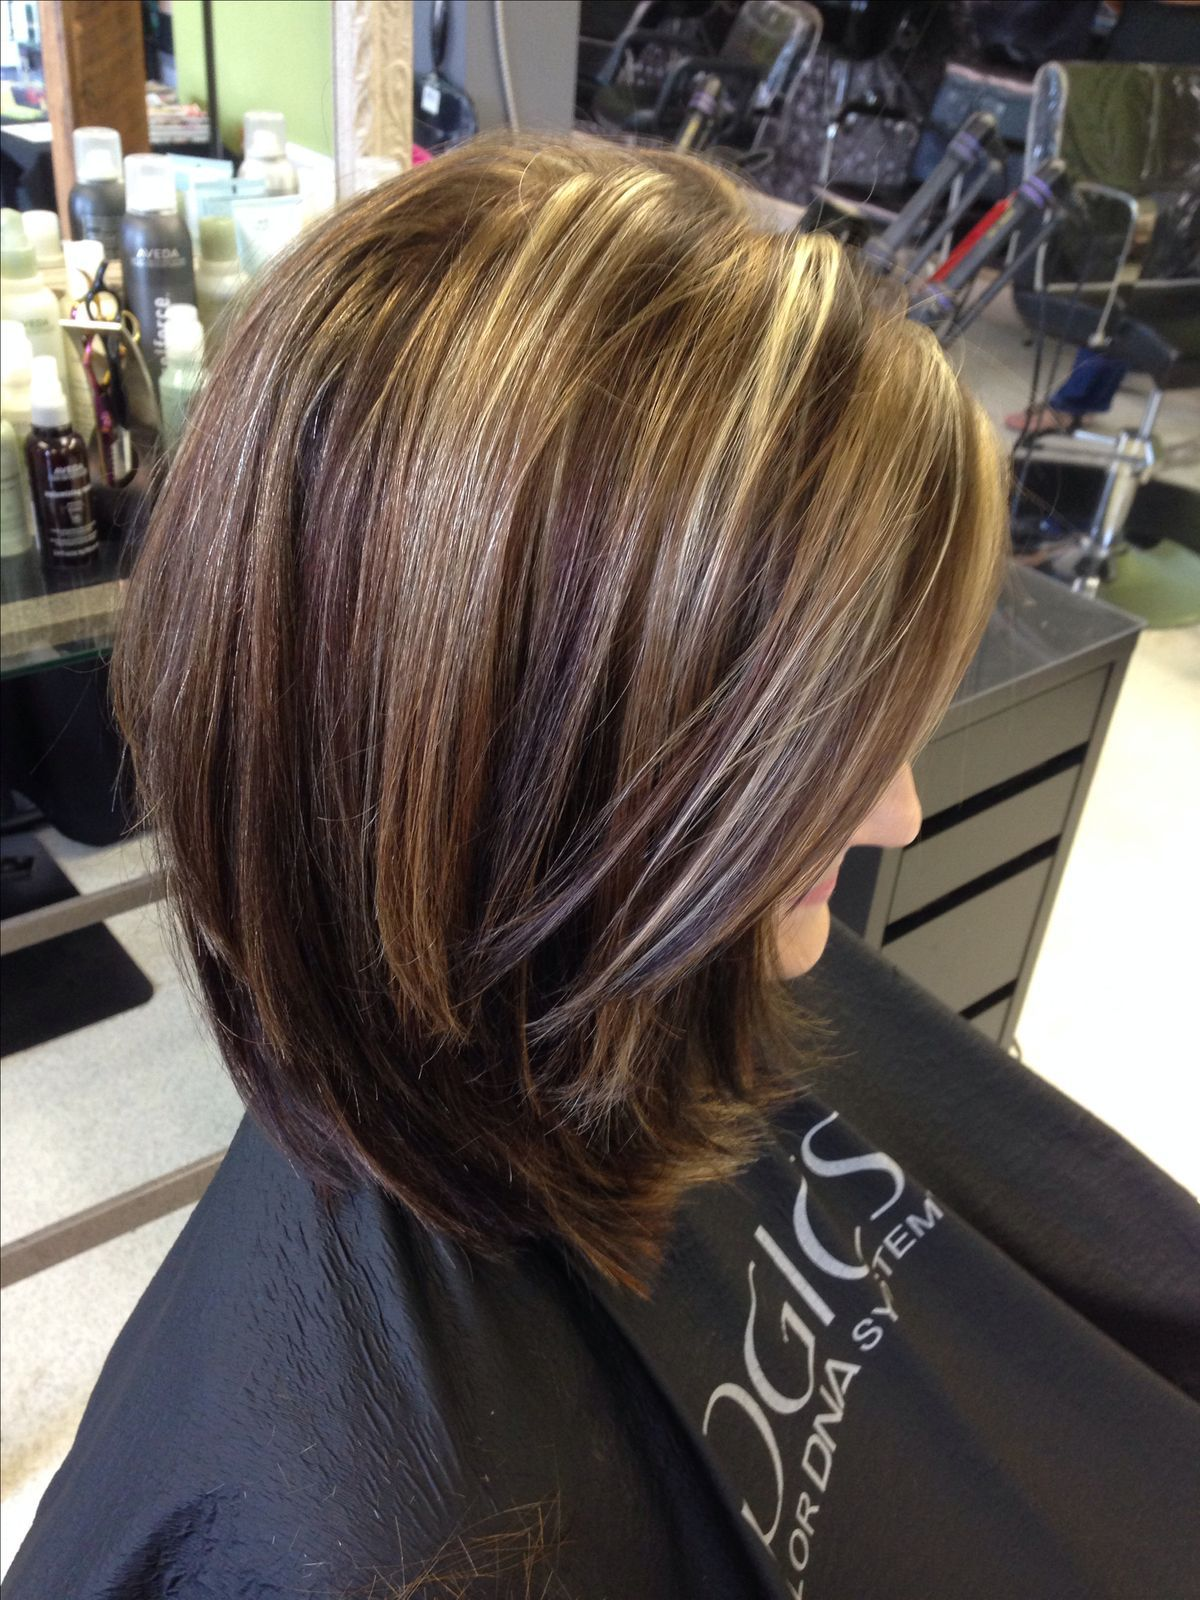 New Color and Highlights for Brown Hair